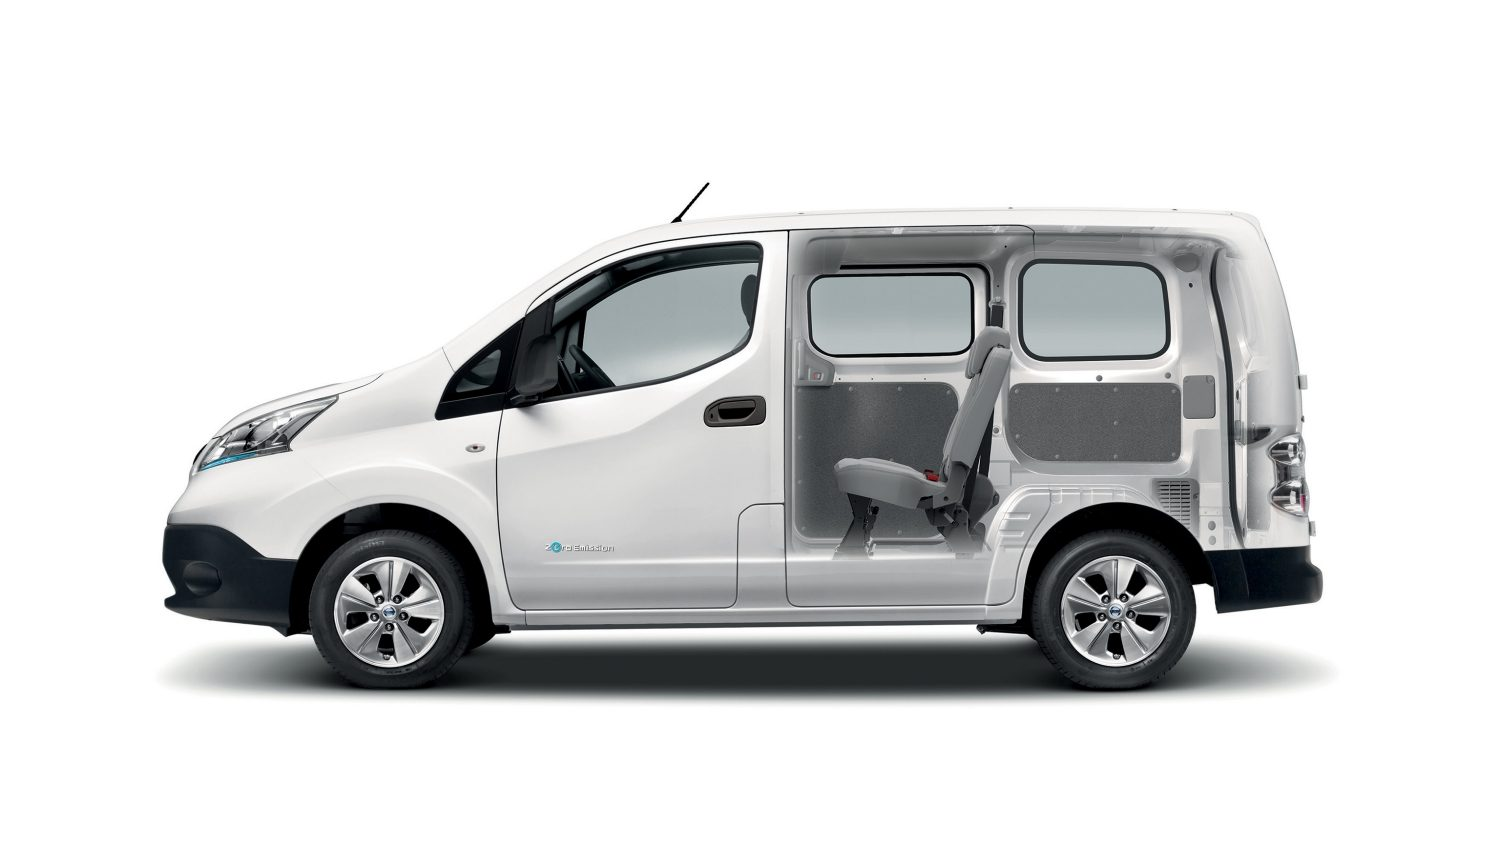 Van | Nissan e-NV200 | People carrier